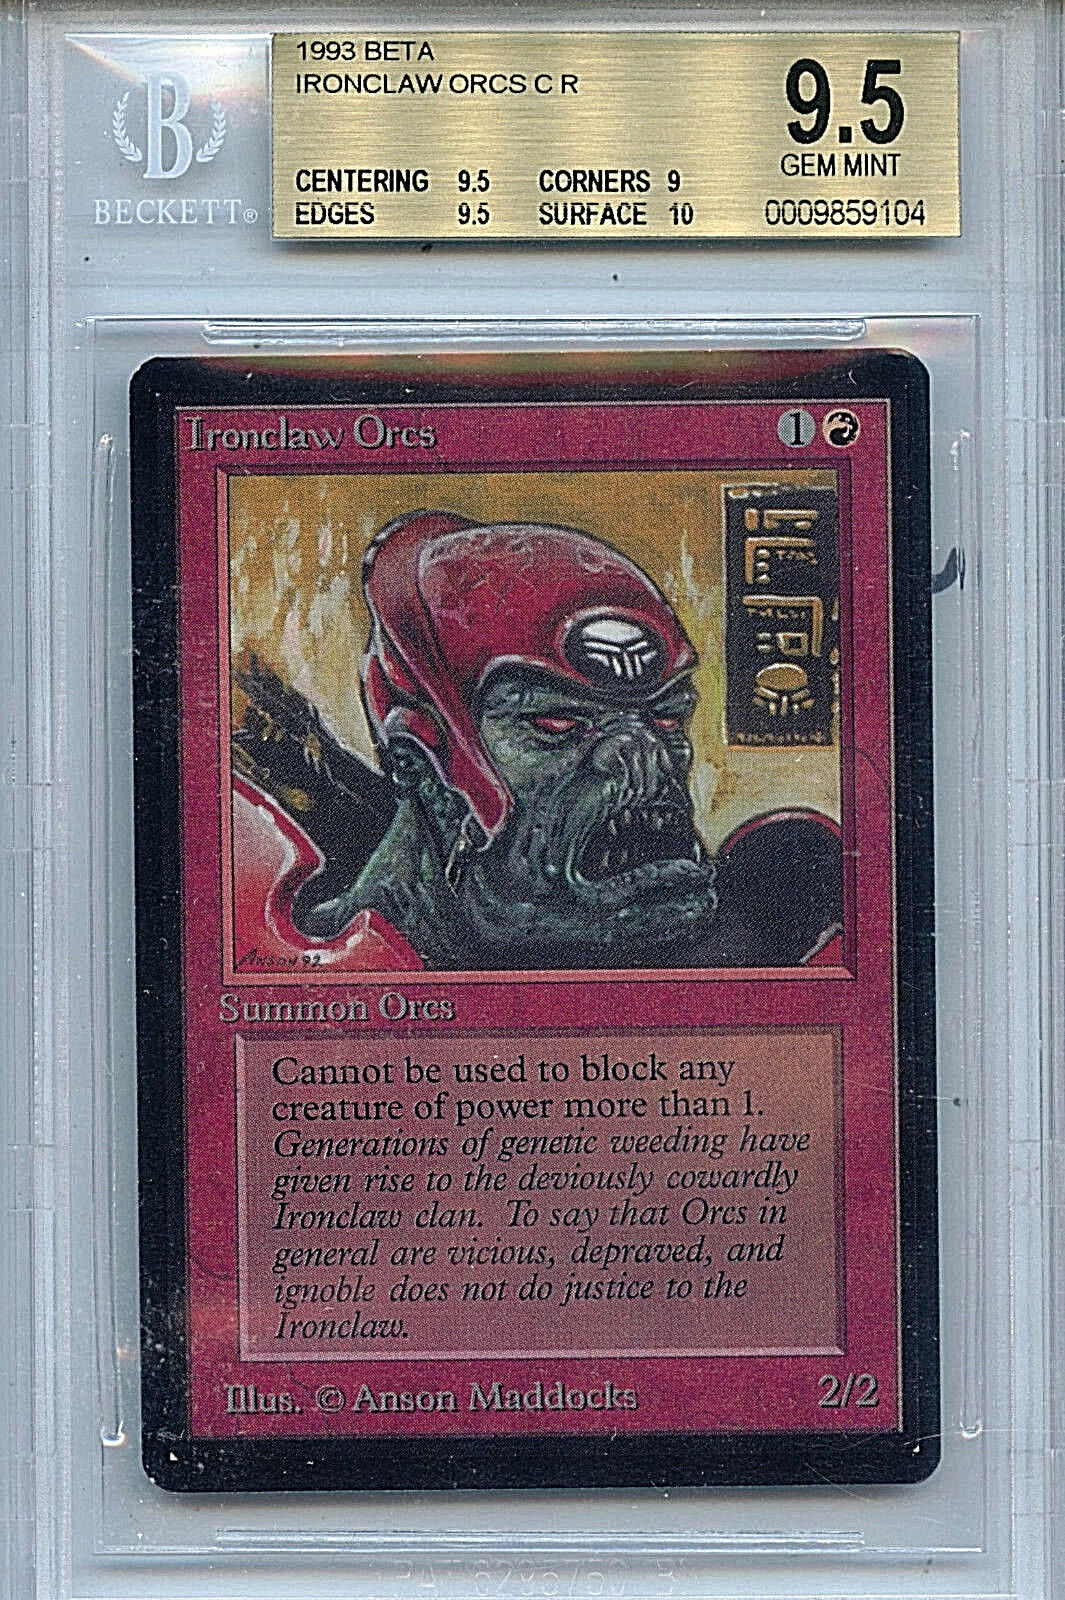 MTG Beta Ironclaps Orcs BGS 9.5 Gem Mint kort magi the Alling WOTC 9104